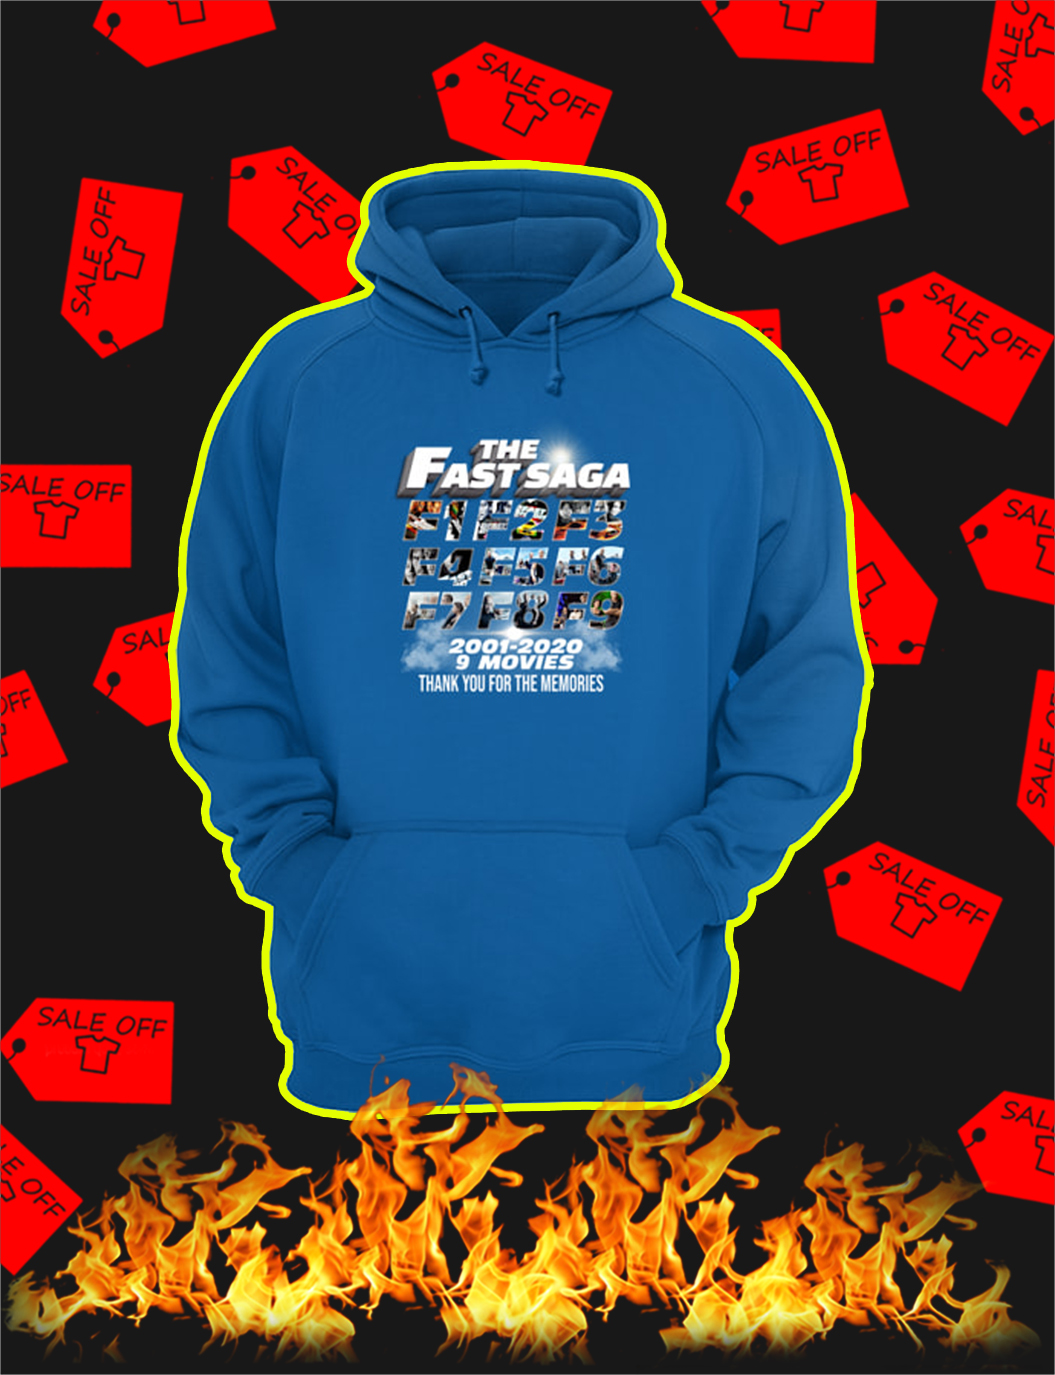 The Fast Saga 2001 2020 Thank You For The Memories hoodie